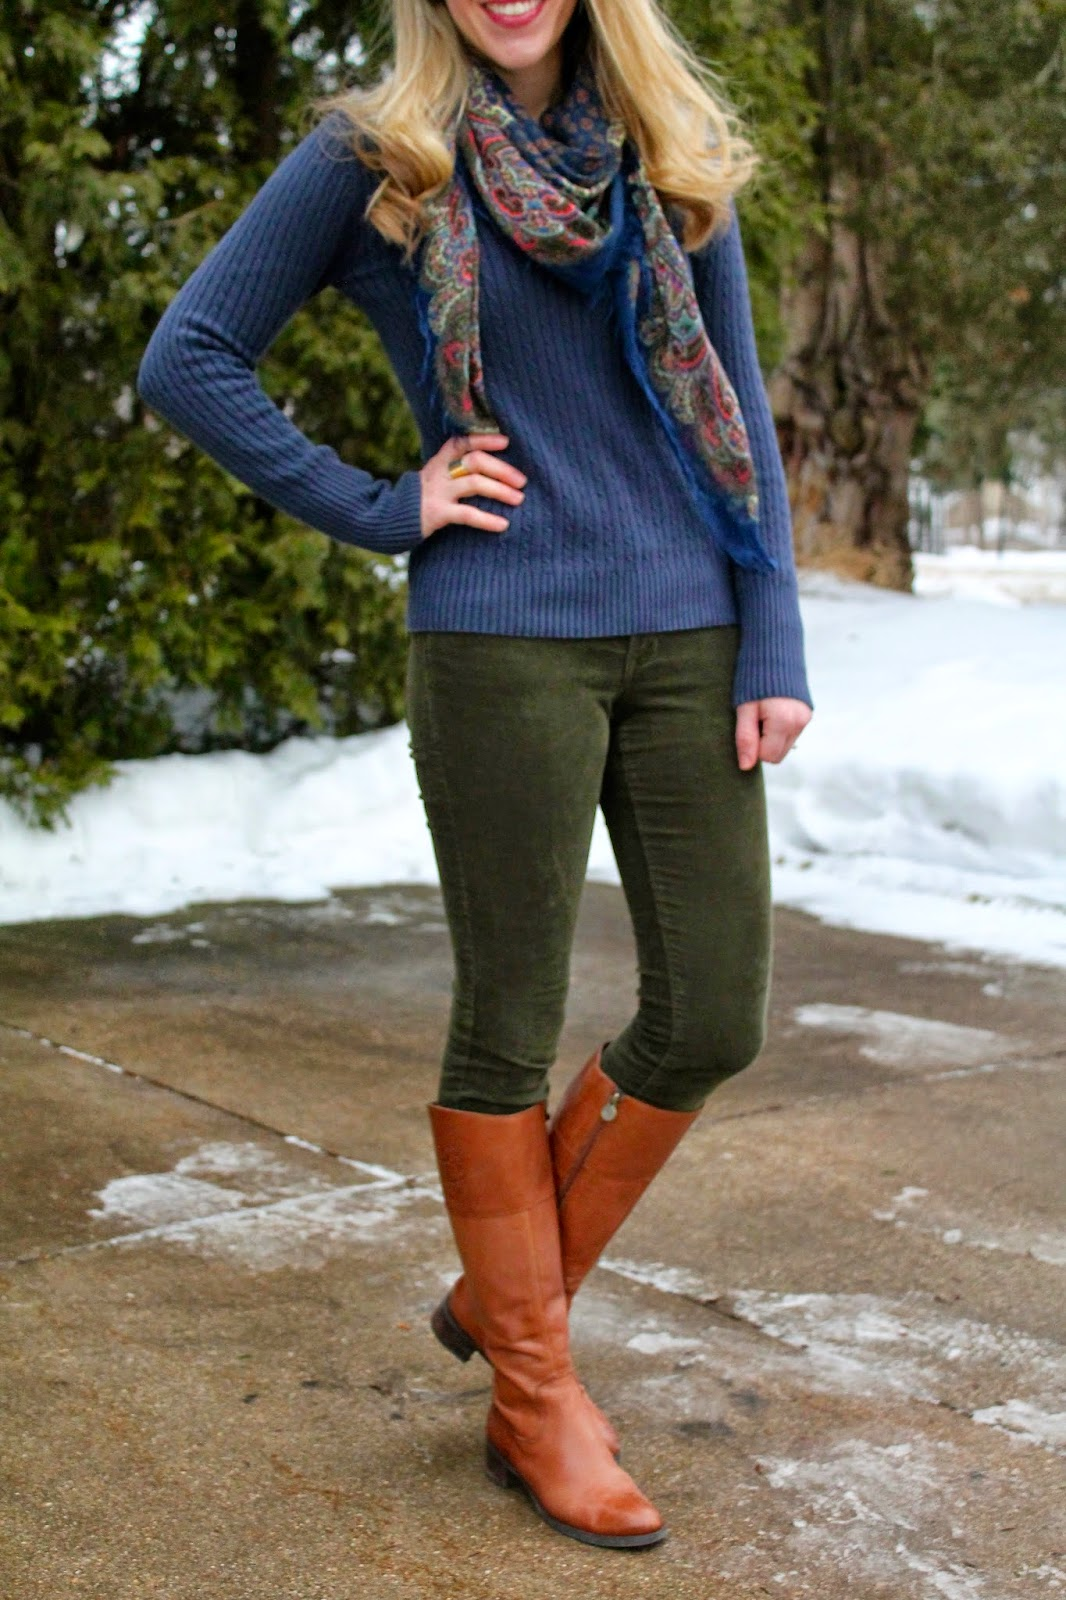 olive corduroy pants and navy sweater